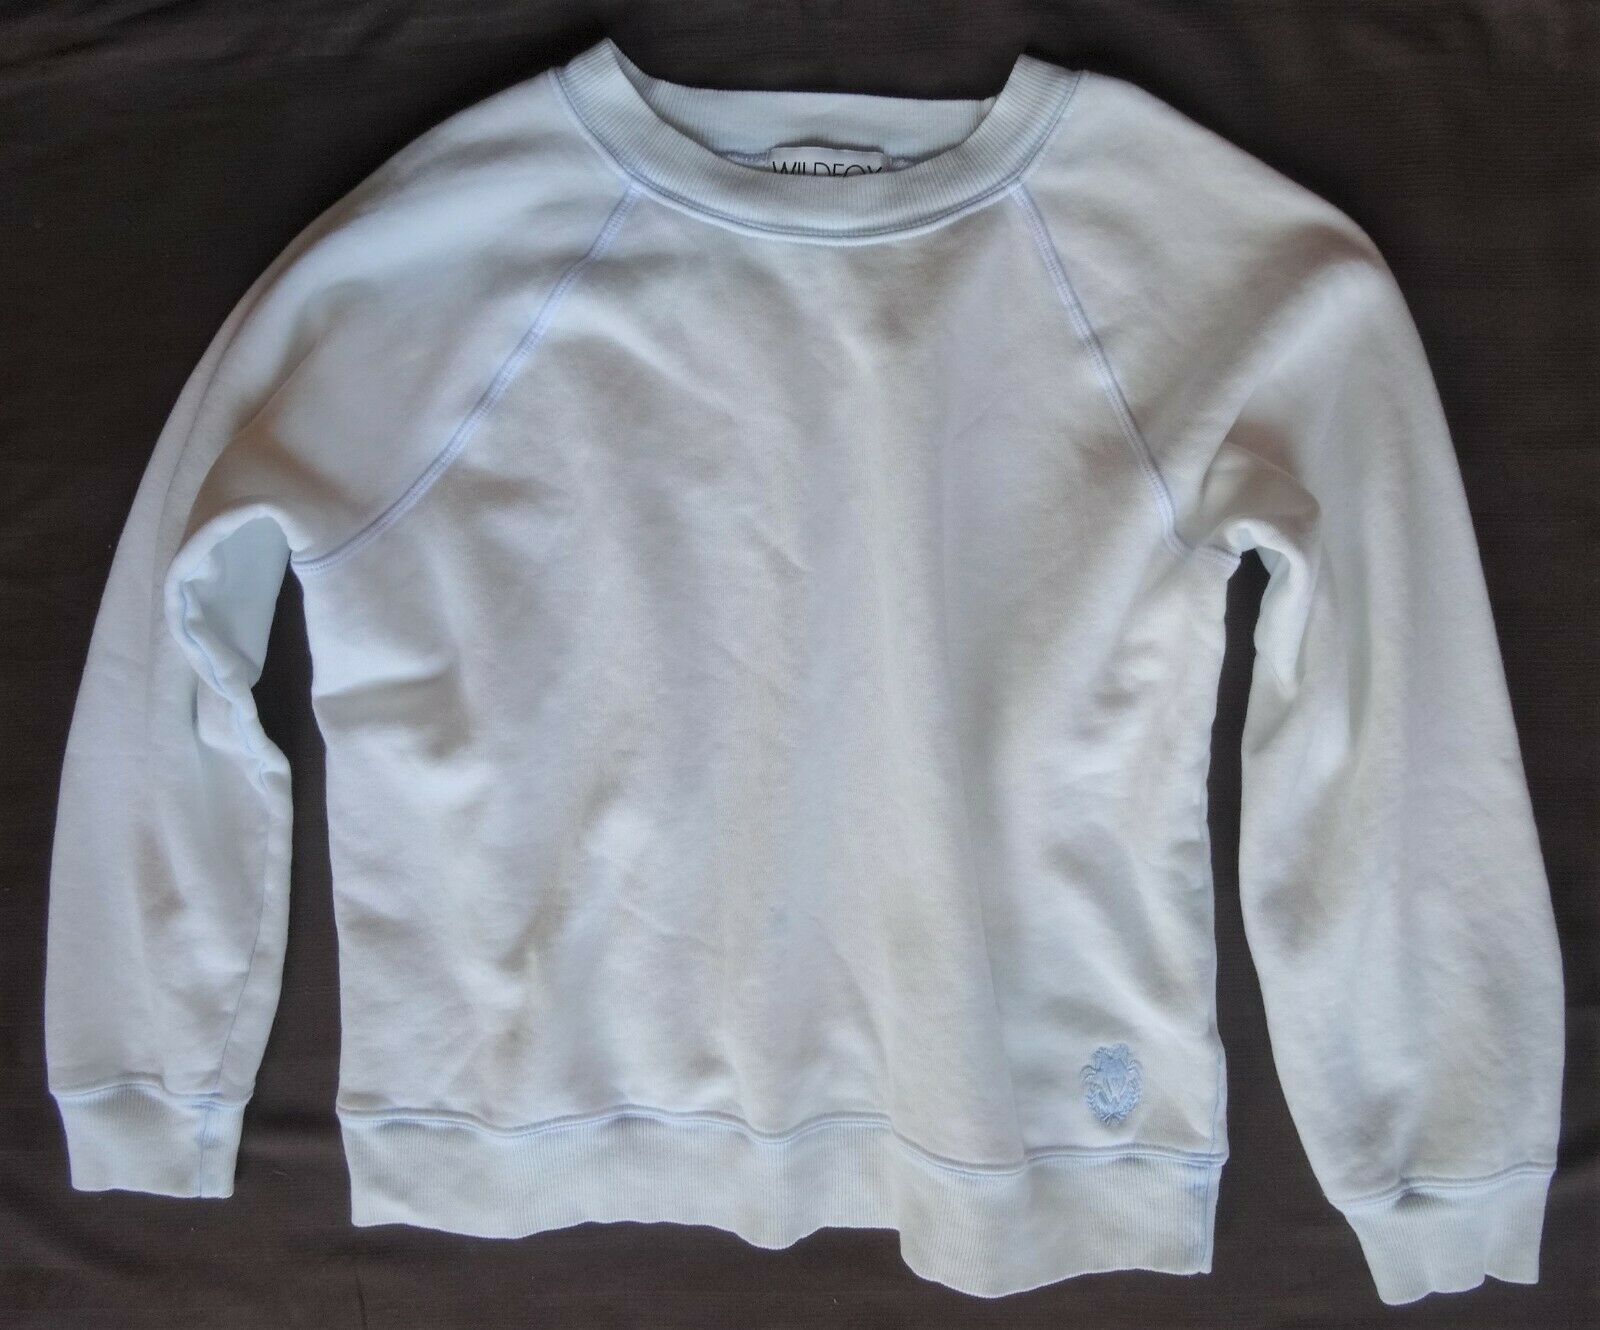 Wildfox Glacier White bluee Bleached Out Sweatshirt Fleece XS Baggy Over sized